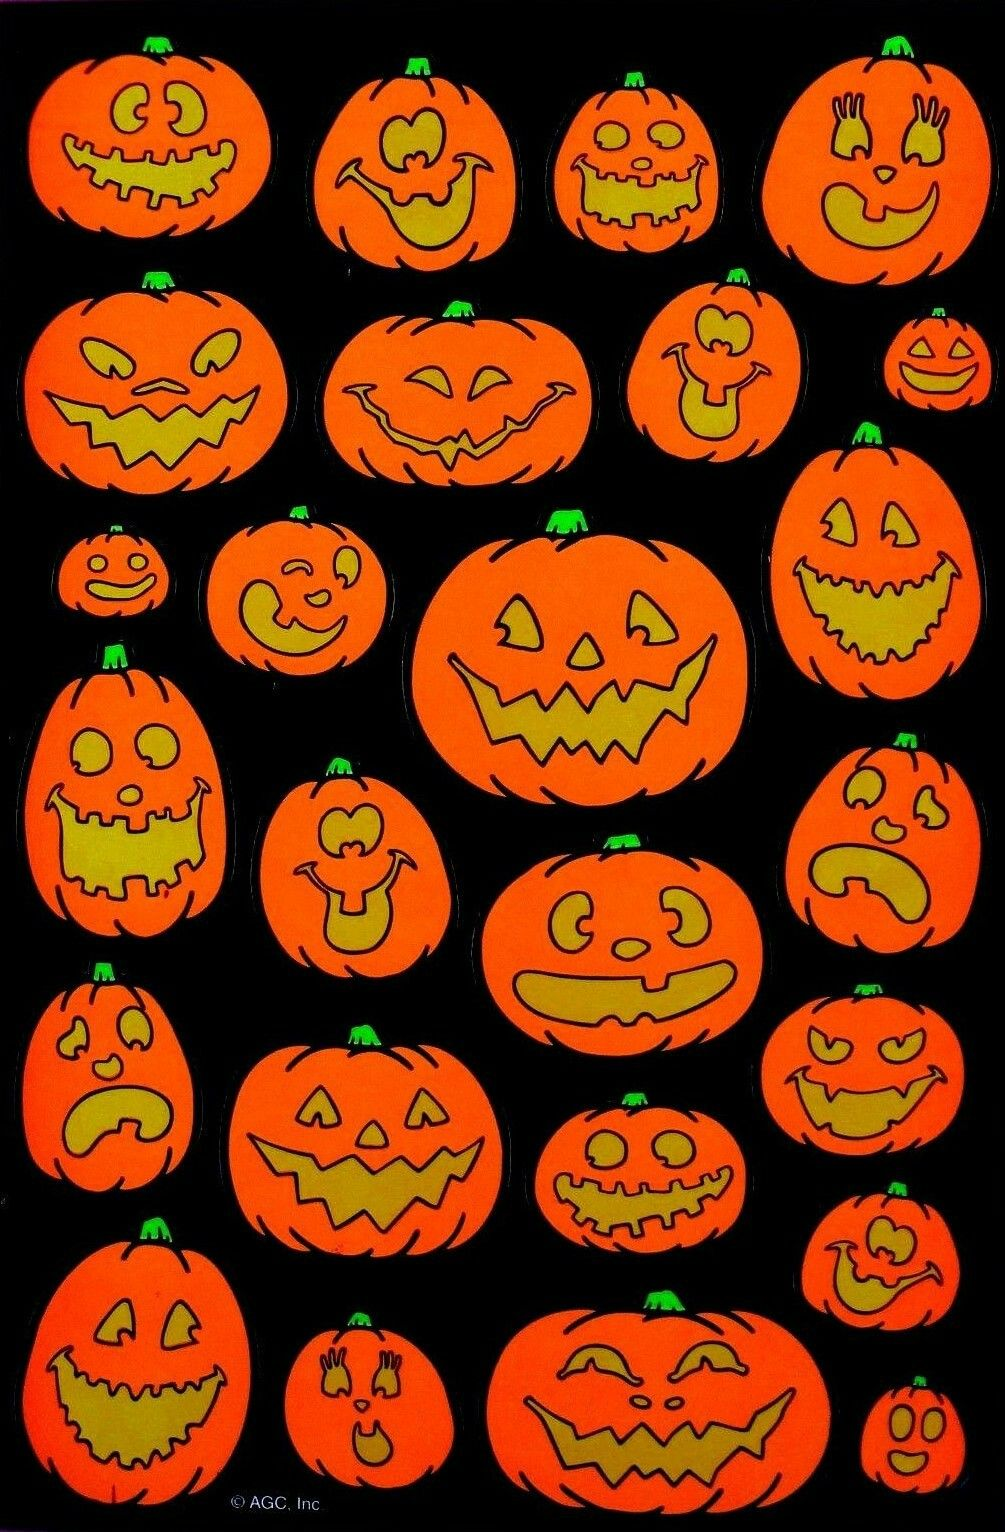 Pin By G On Wallpapers Halloween Wallpaper Iphone Vintage Halloween Halloween Pictures